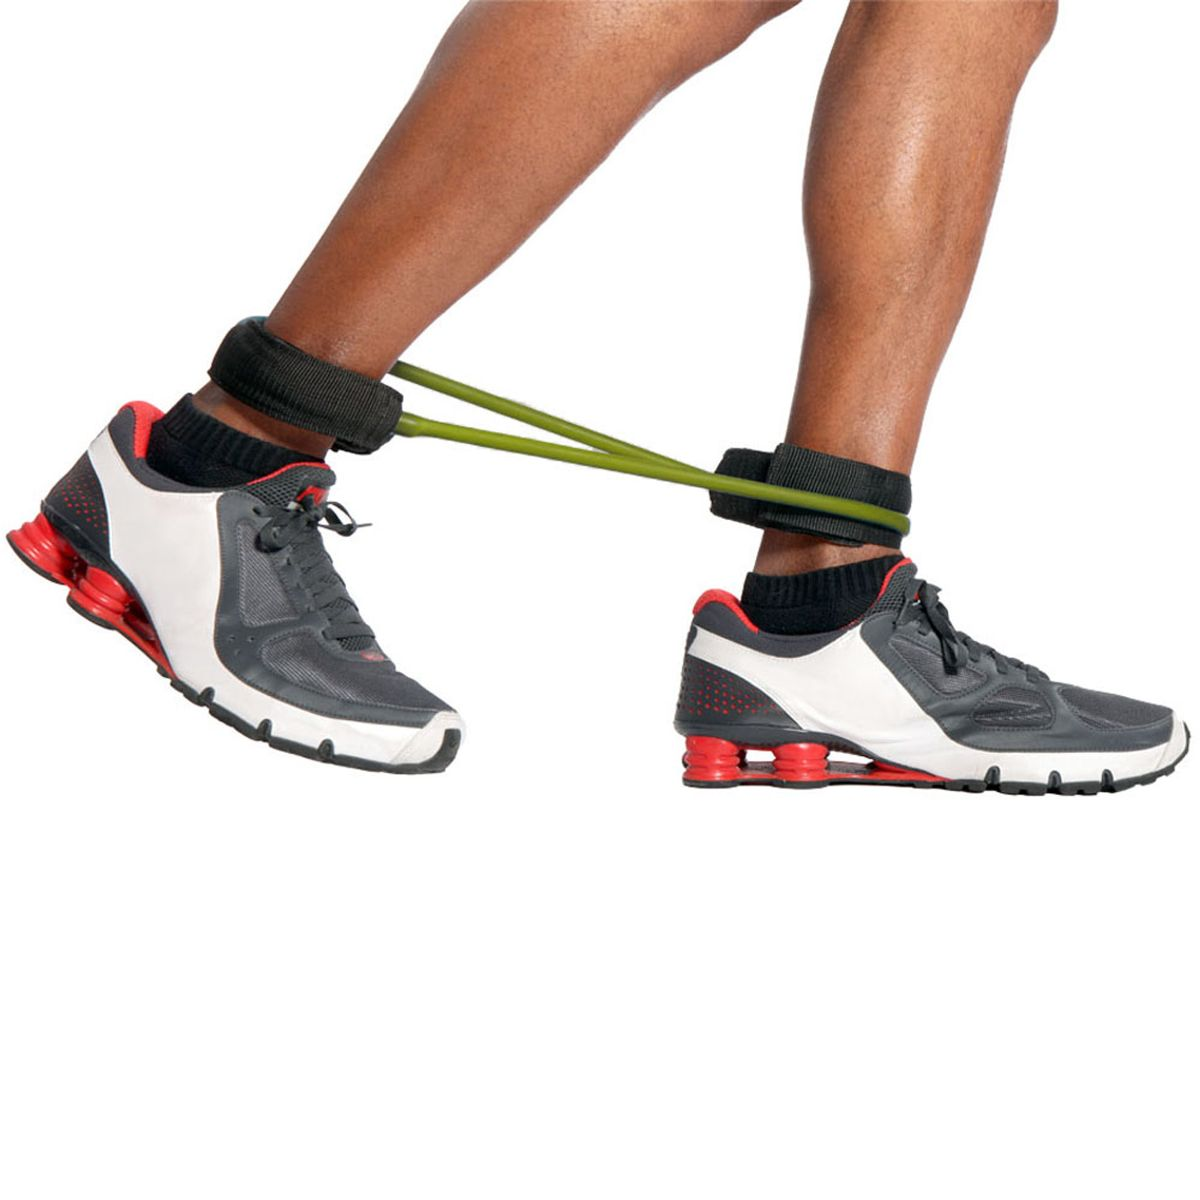 PRO Resistance Ankle Cuffs : Resistance Bands And Tubing